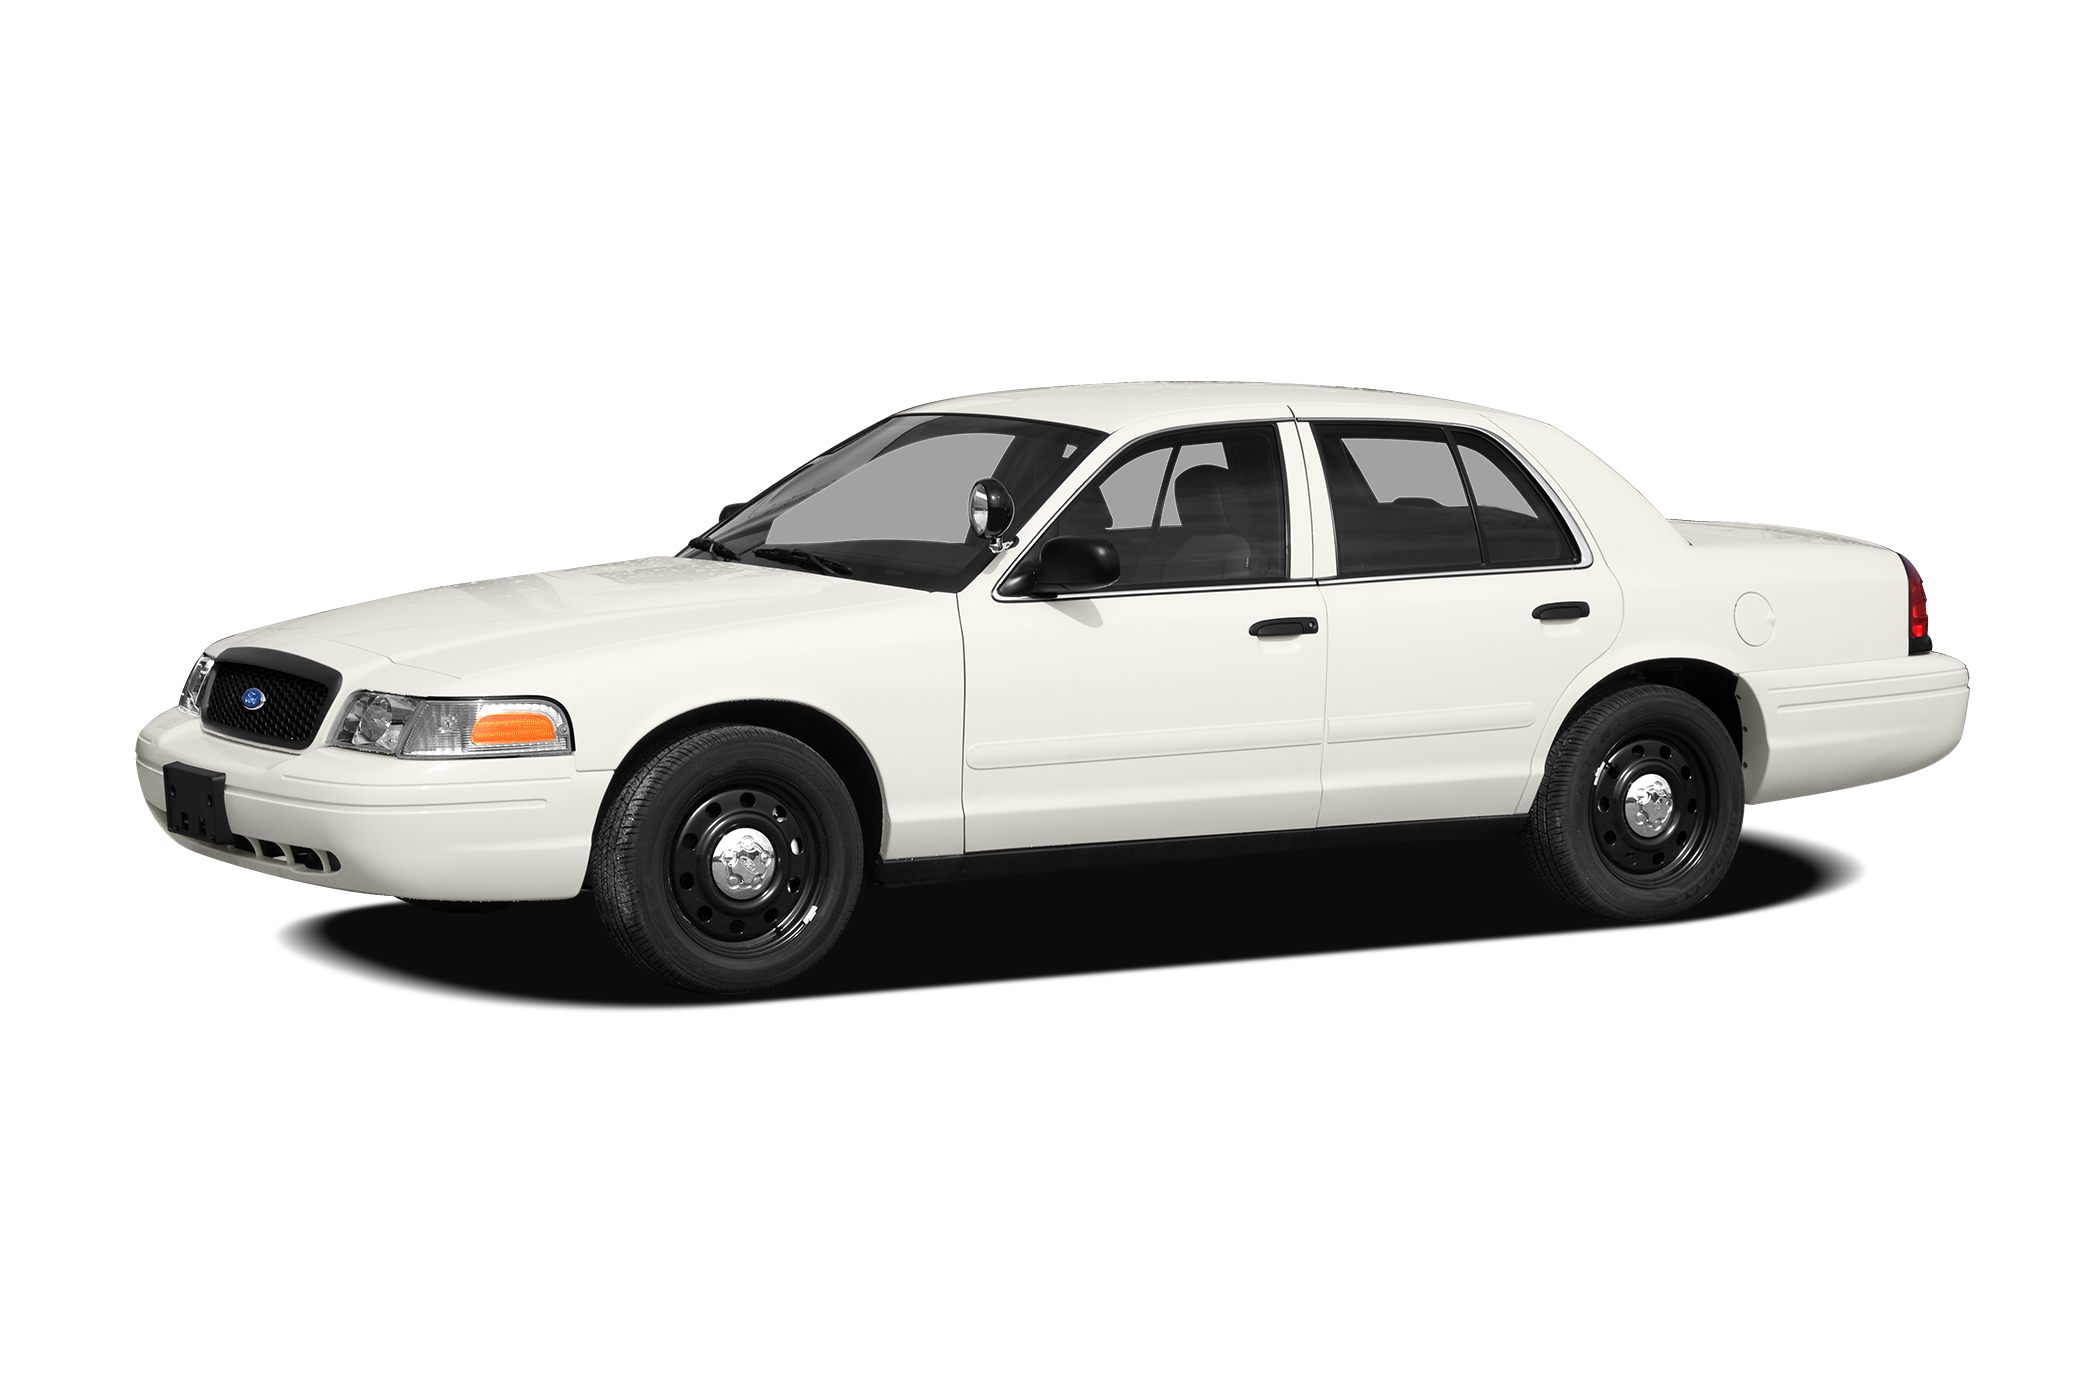 2007 Ford Crown Victoria Police Interceptor Miles 111446Color Pewter Stock 8436 VIN 2FAFP71W